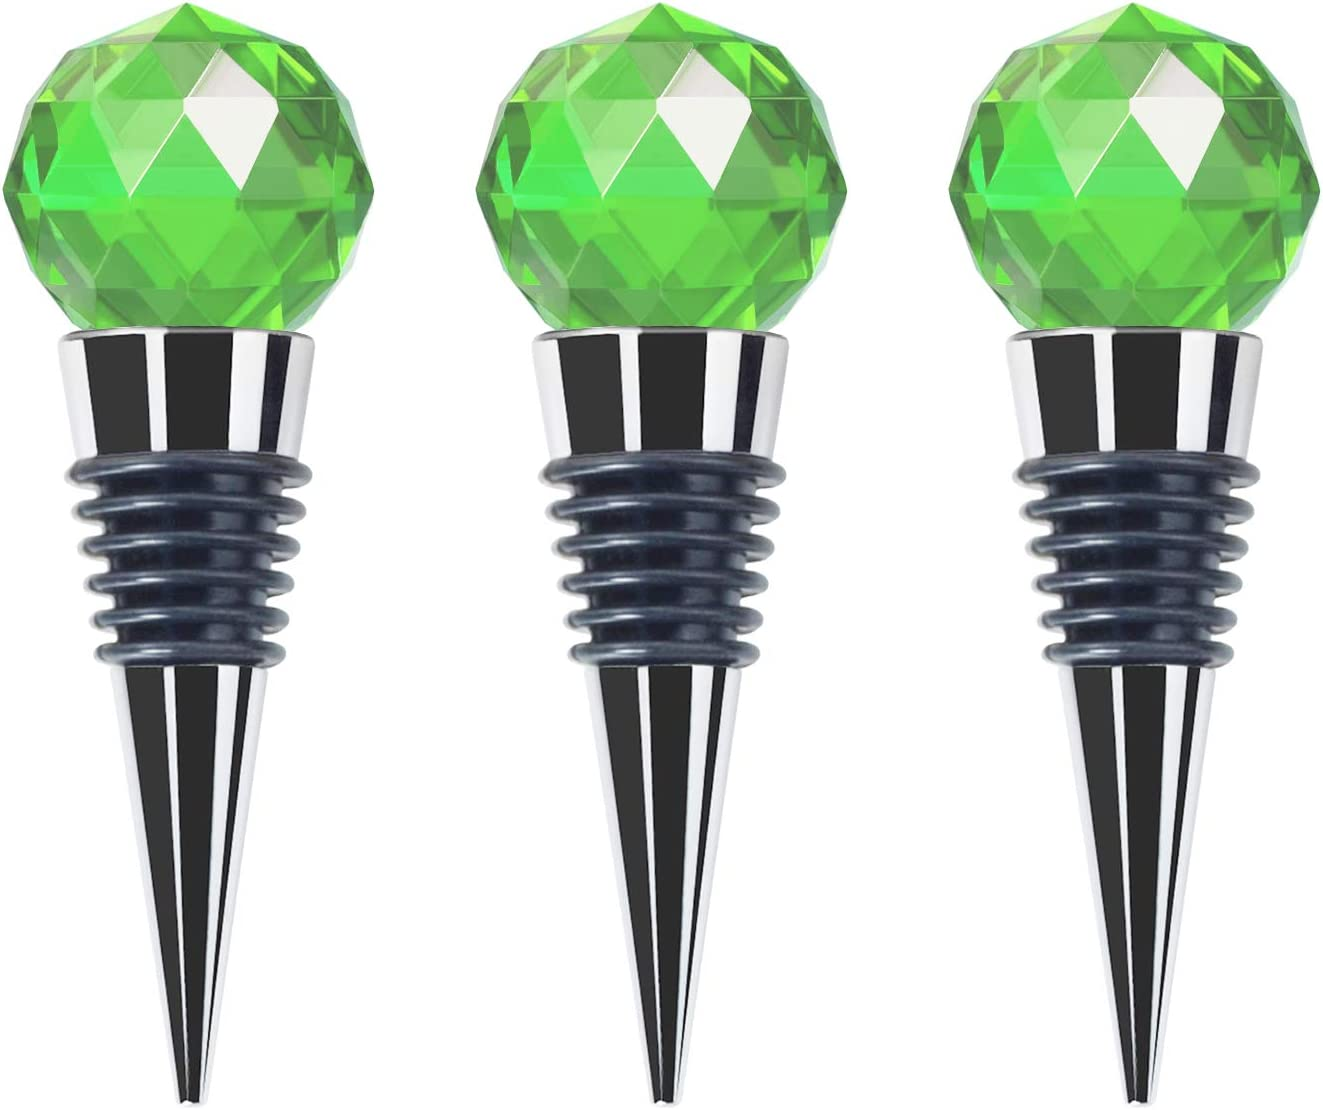 JETKONG Crystal Wine and Beverage Stoppers Glass Decorative Bottle Stopper, Set of 3 (Green)